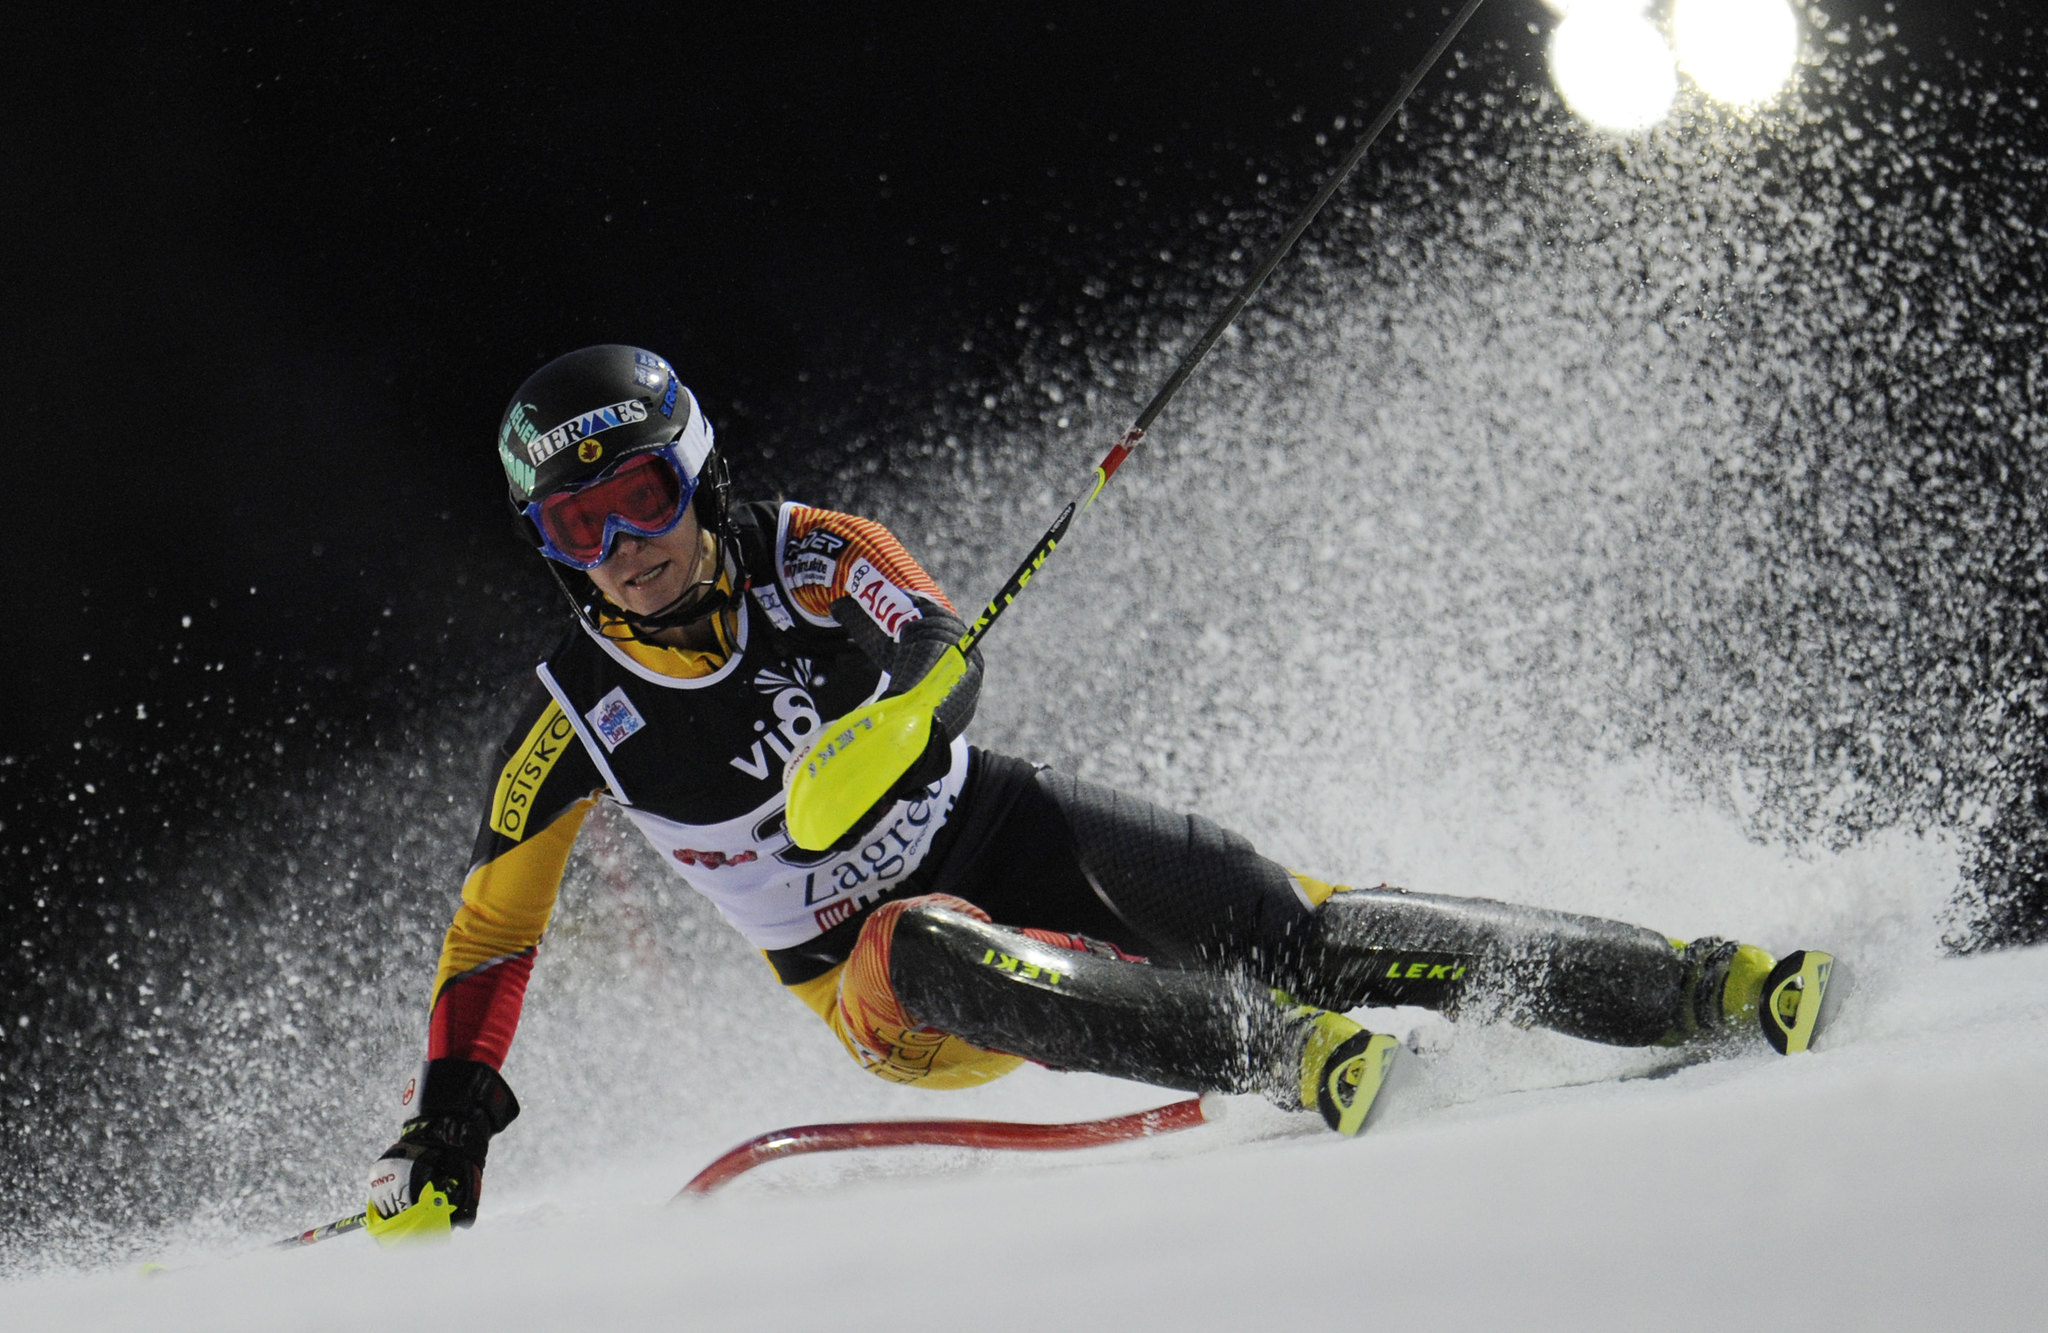 Brittany Phelan navigates a gate in the World Cup night slalom in Zagreb, Croatia.